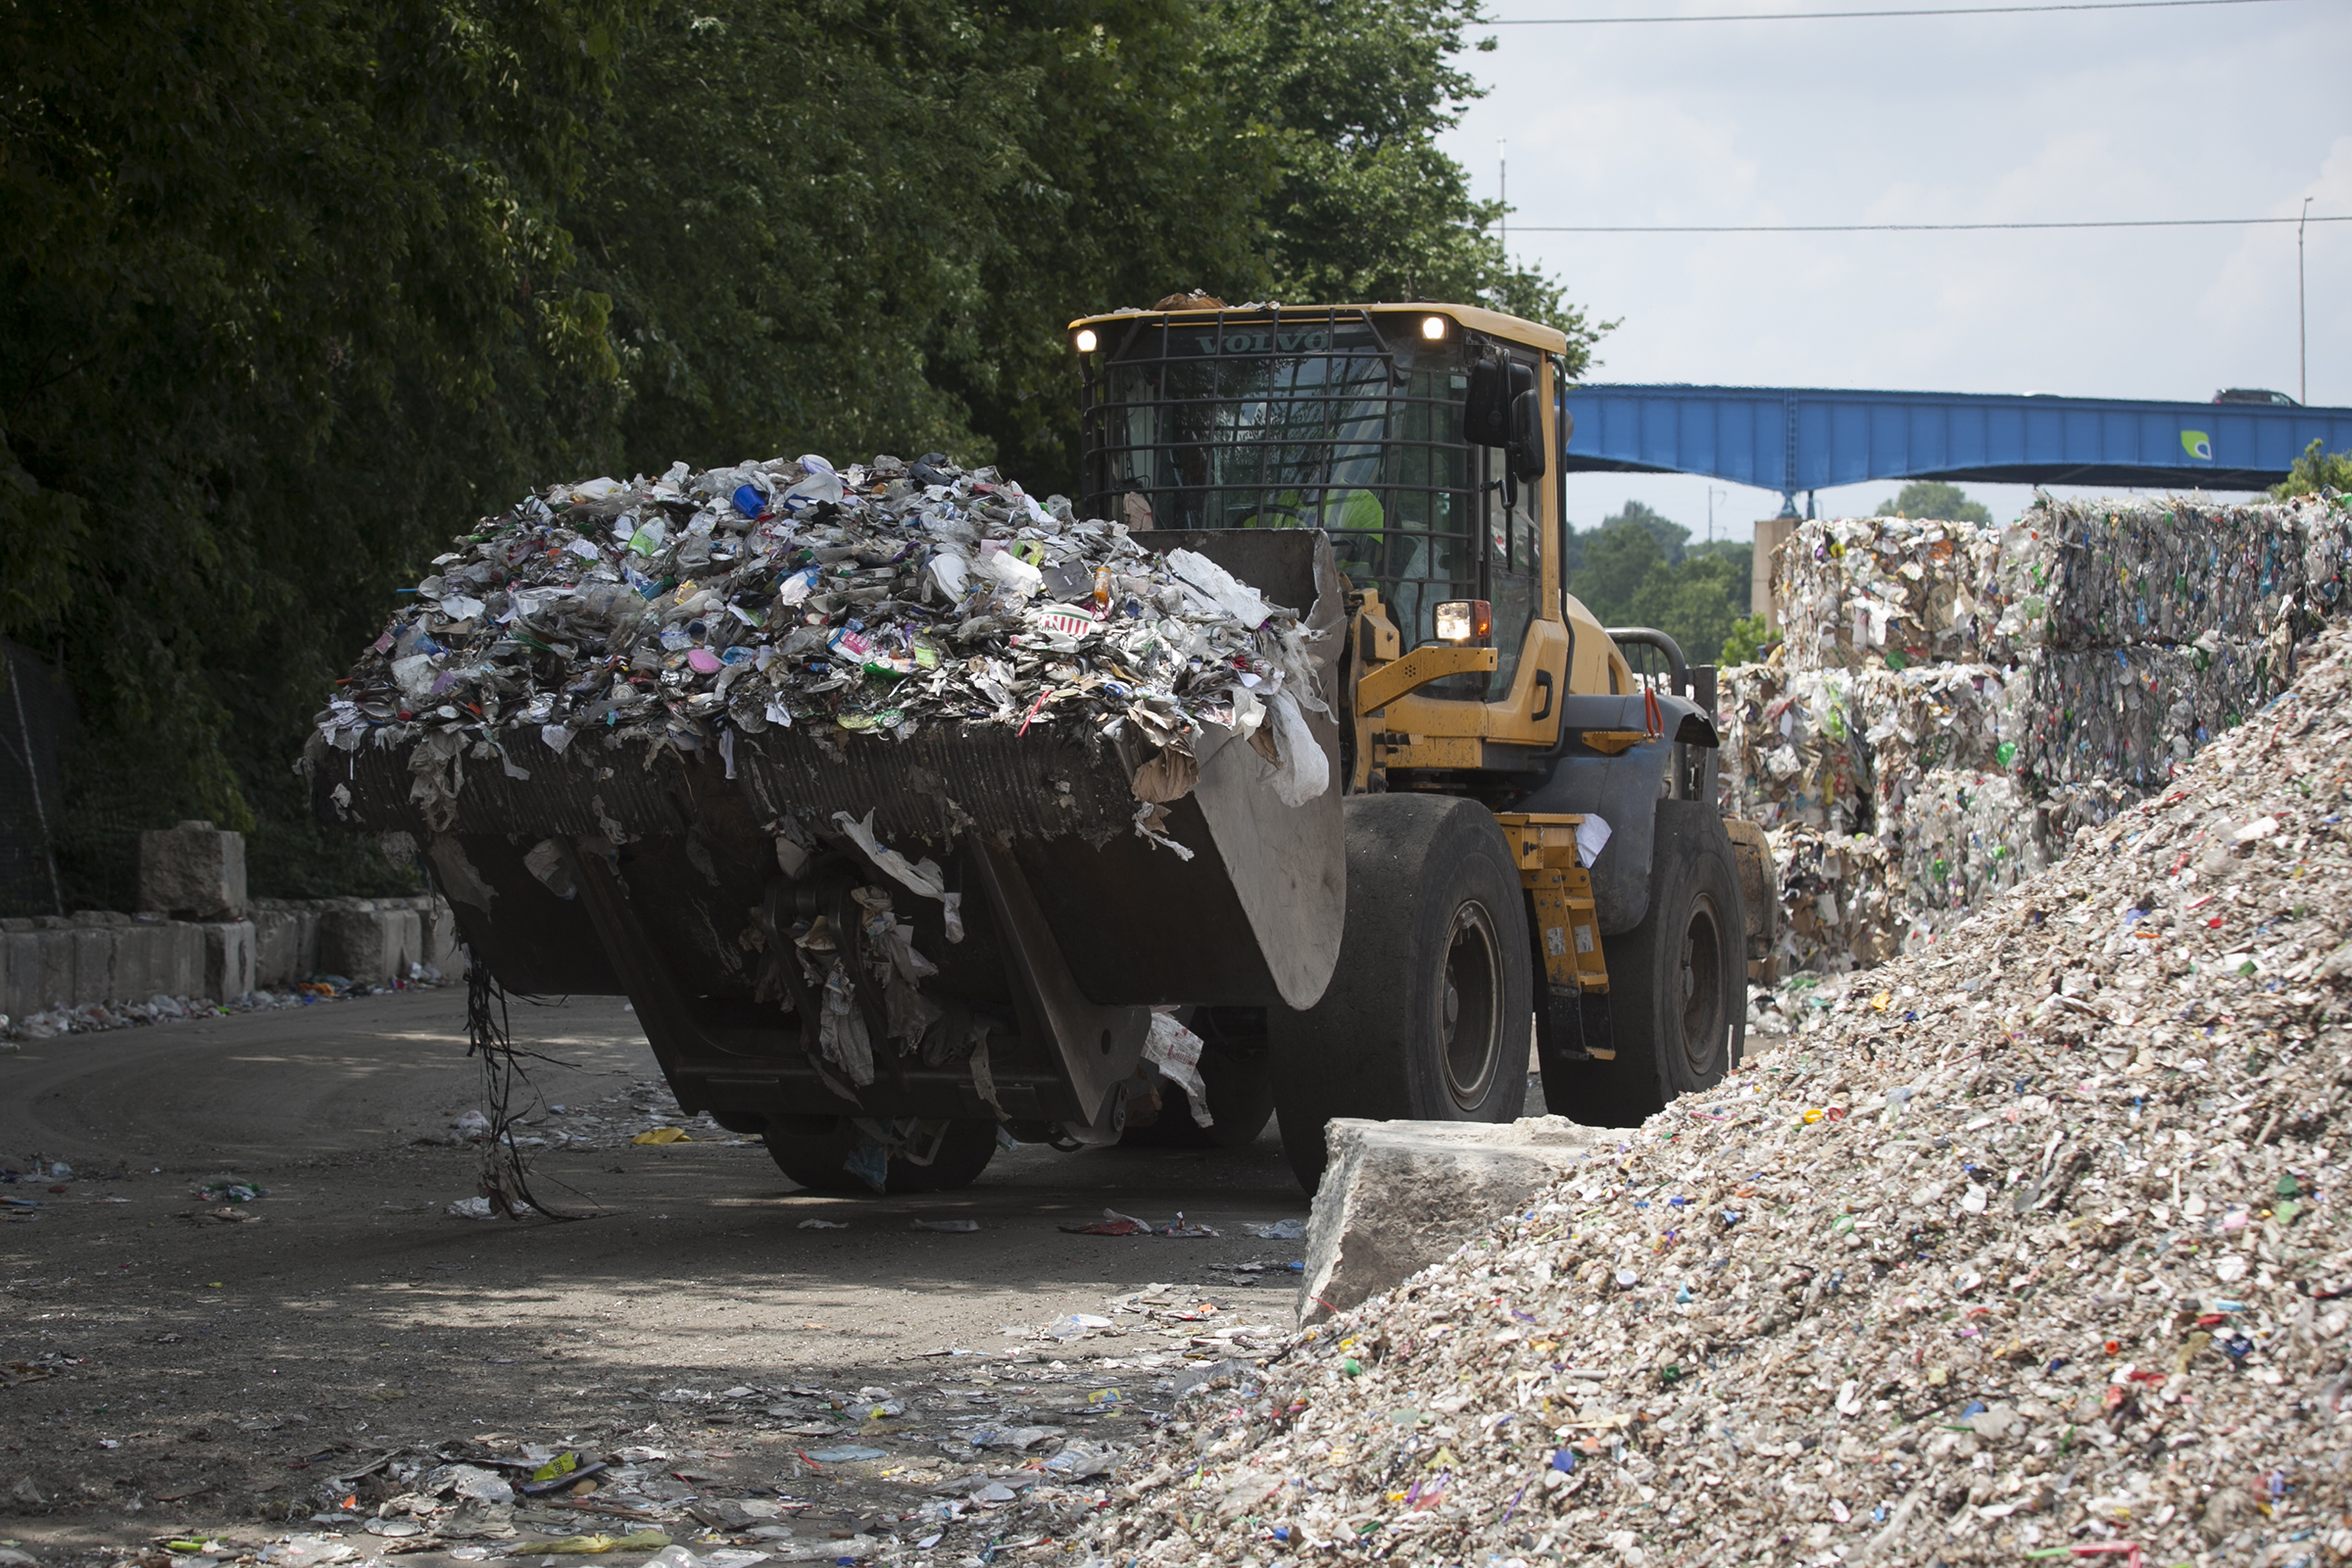 A loader moves waste and recyclables at Republic Services